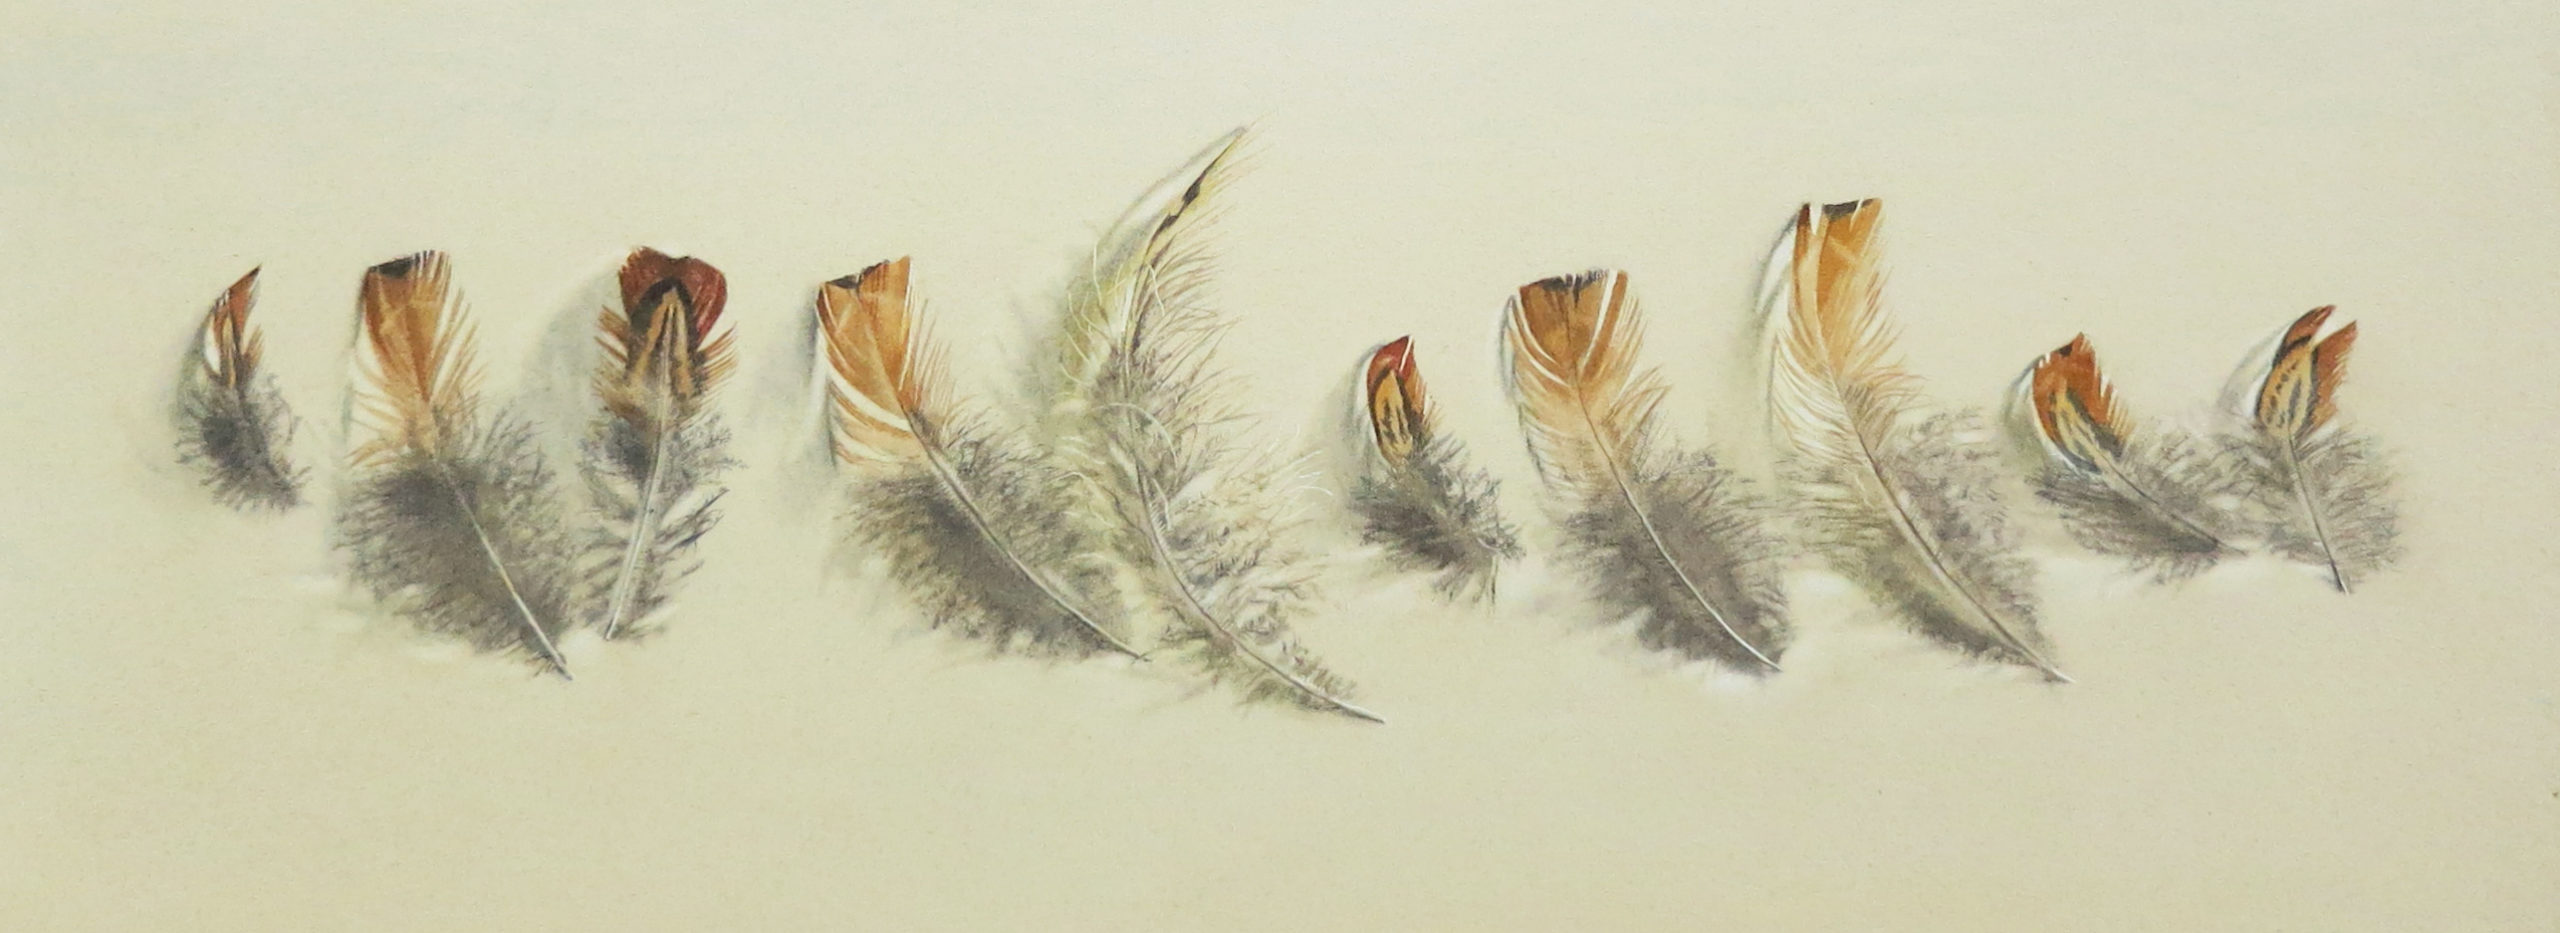 Messy feathers 17.5 x 51cm